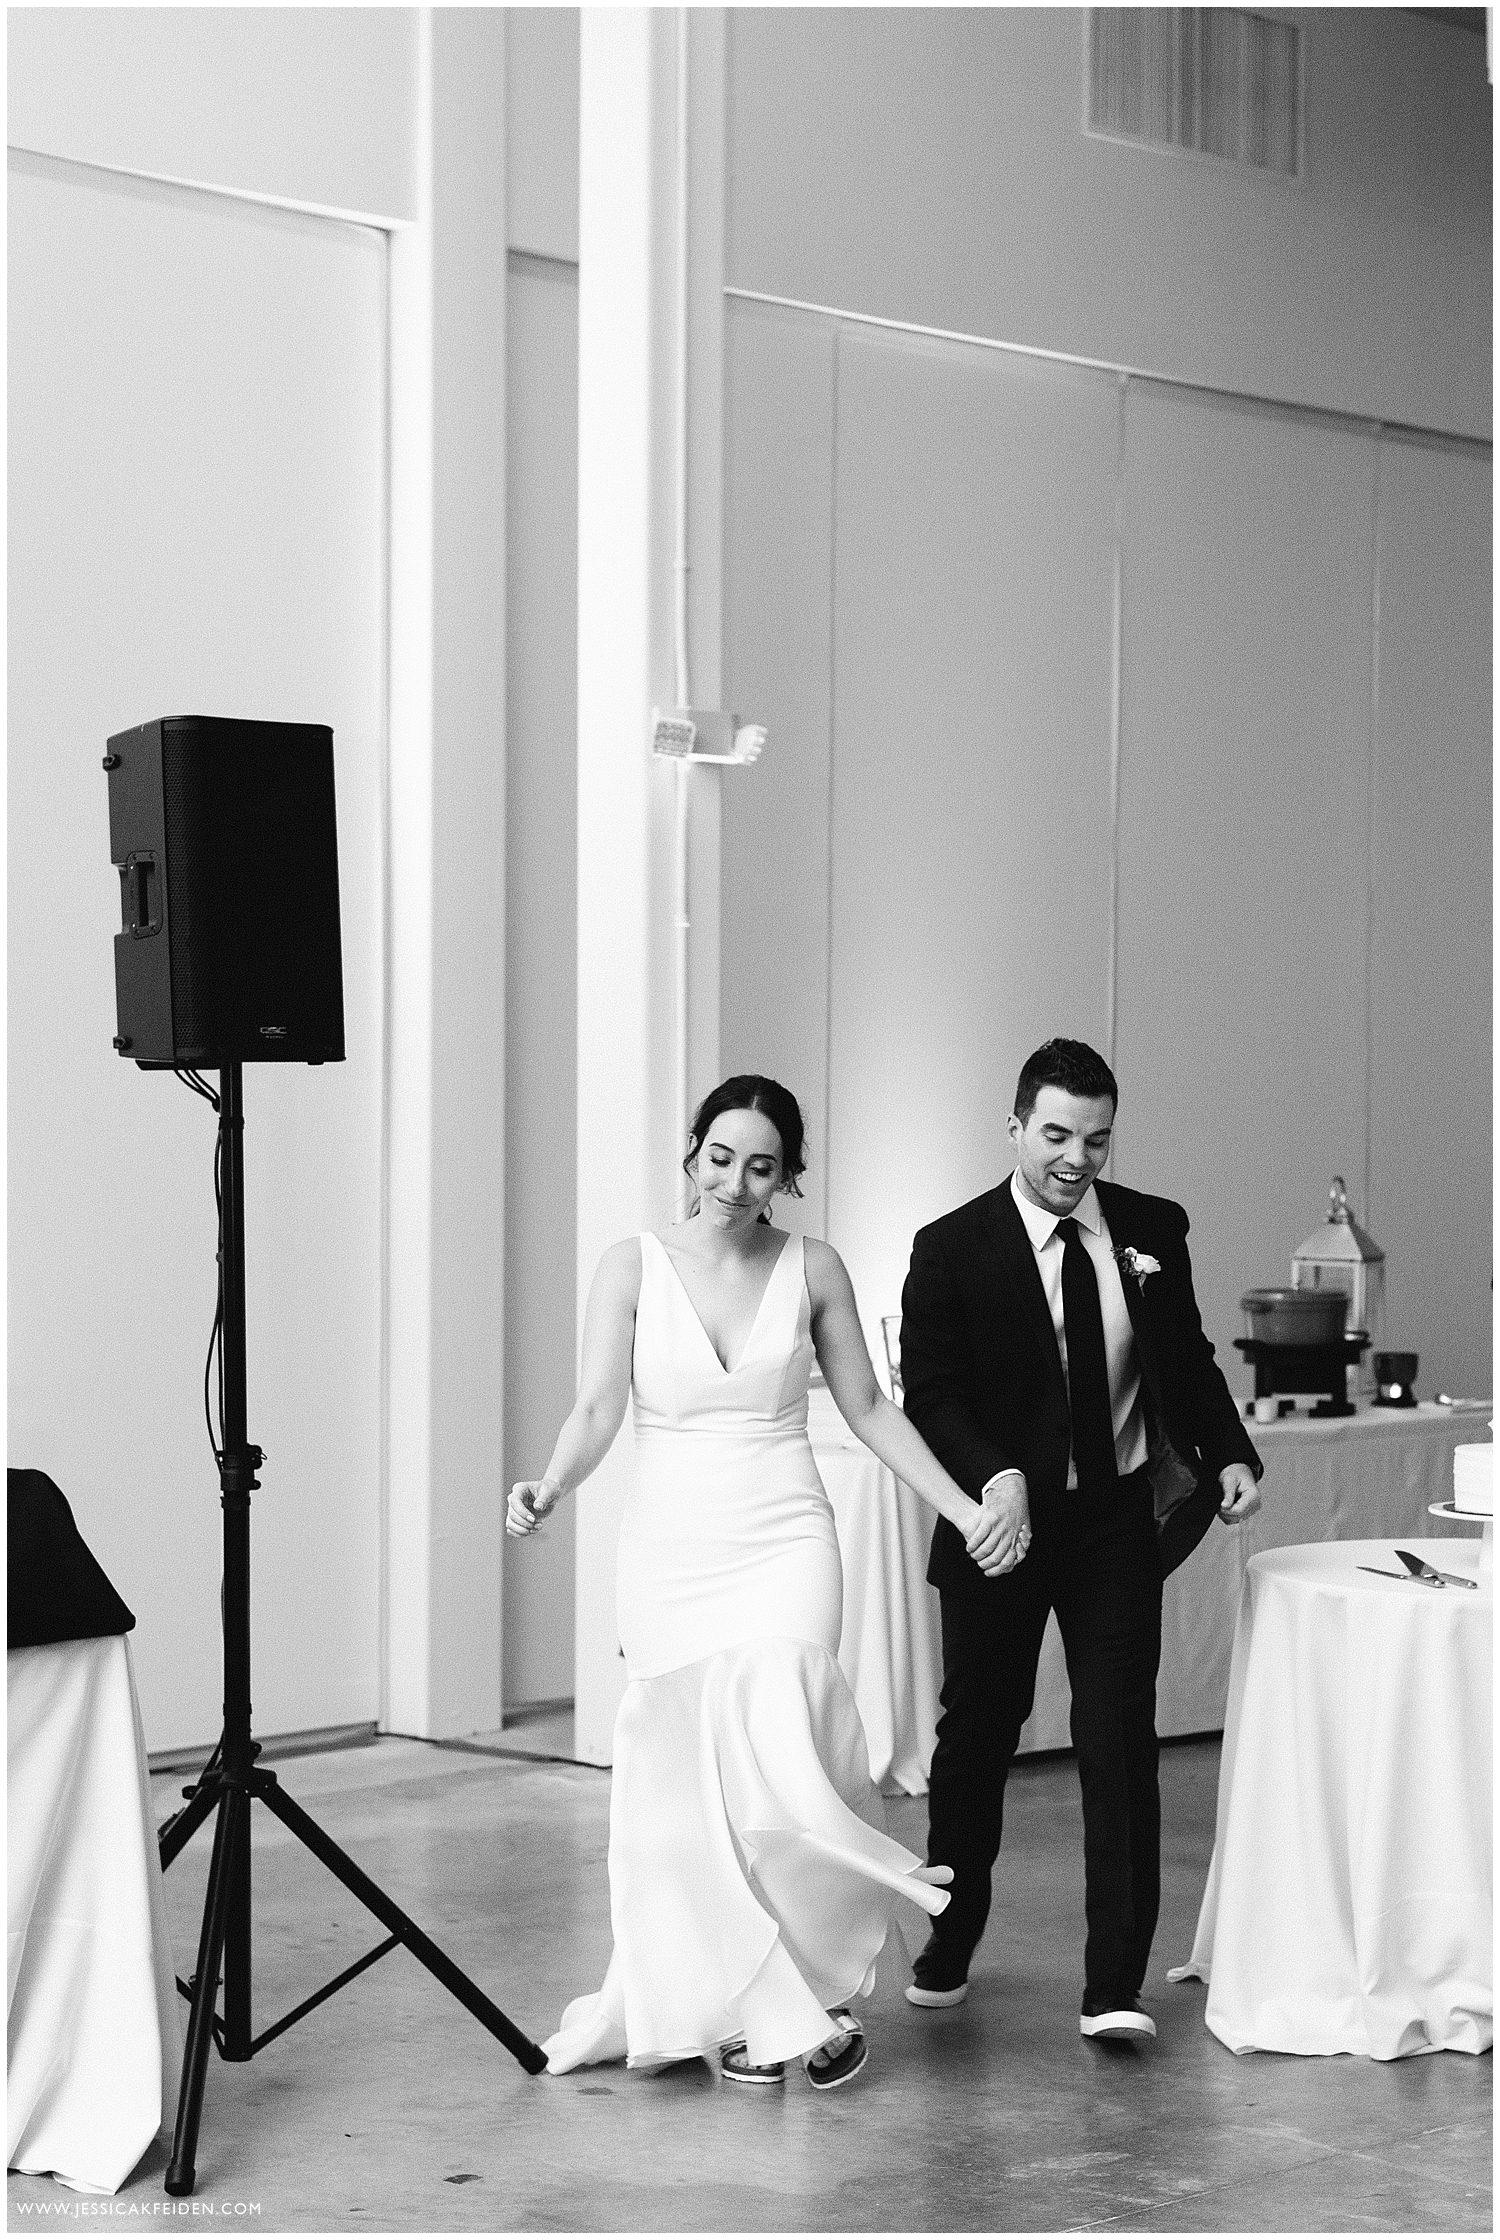 Jessica K Feiden Photography_Artist for Humanity Wedding Boston Photographer_0052.jpg